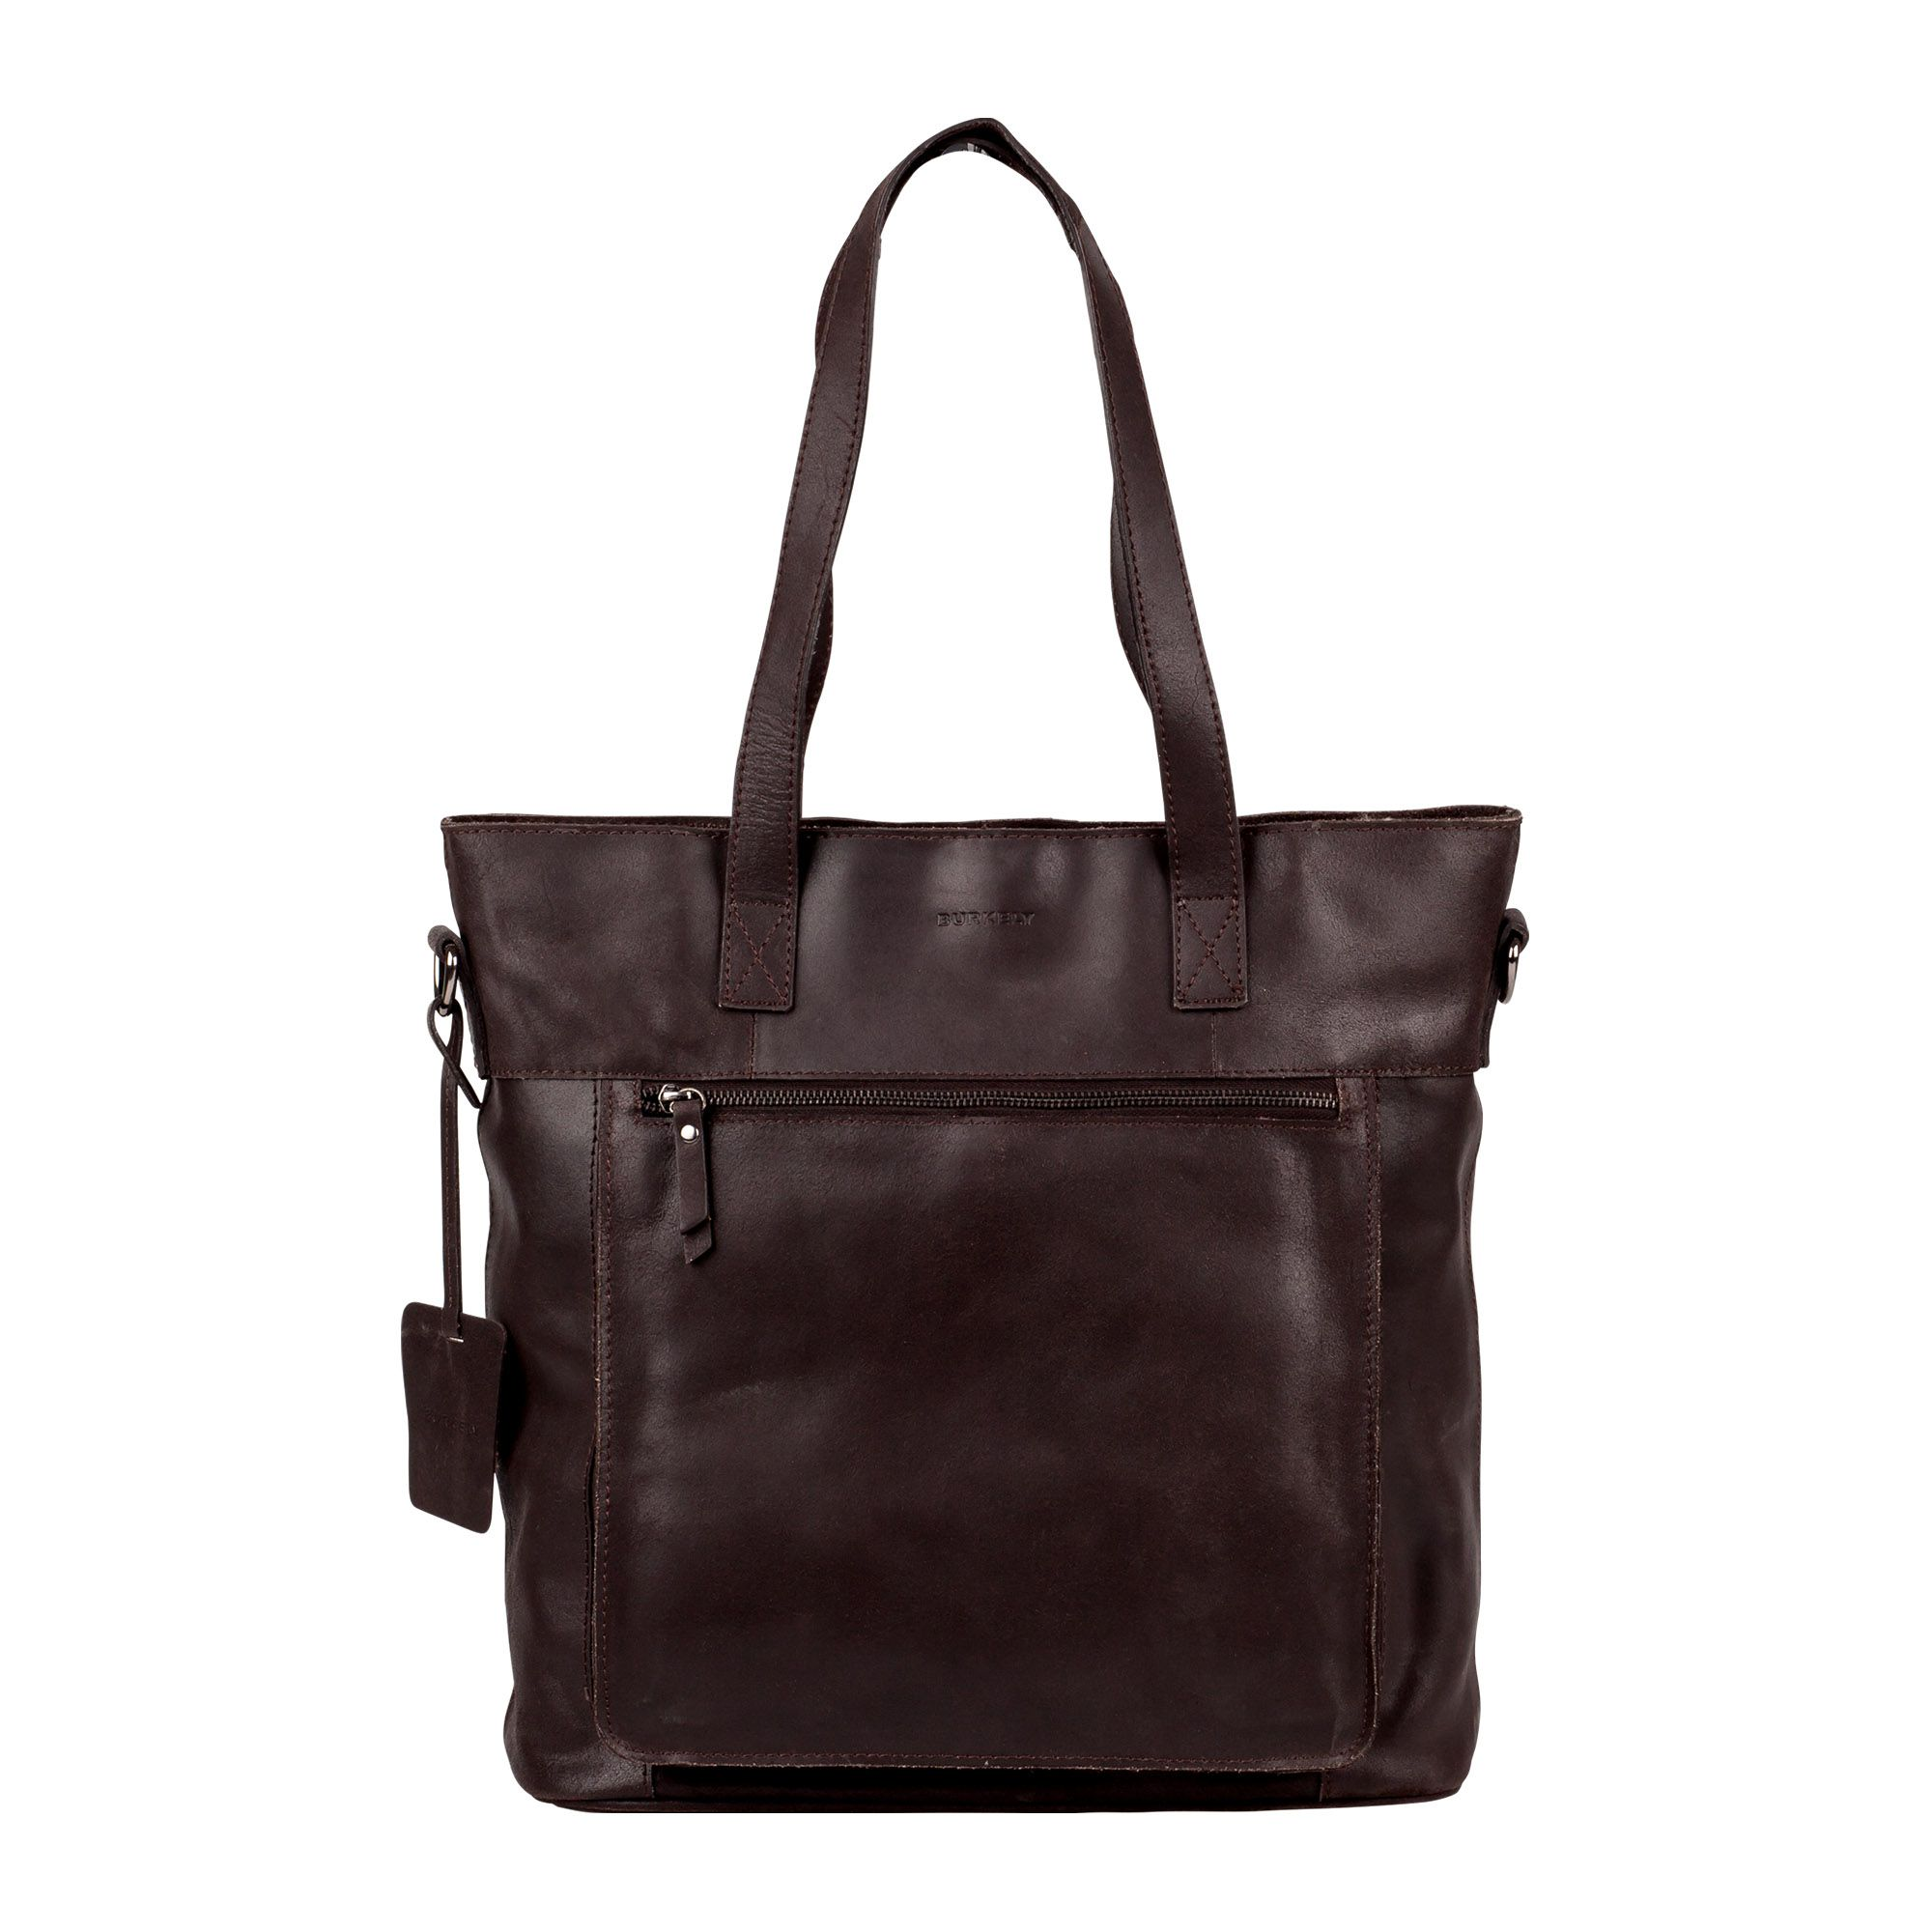 Laptoptas Burkely Jade Vintage Shopper Dark Brown 12 inch